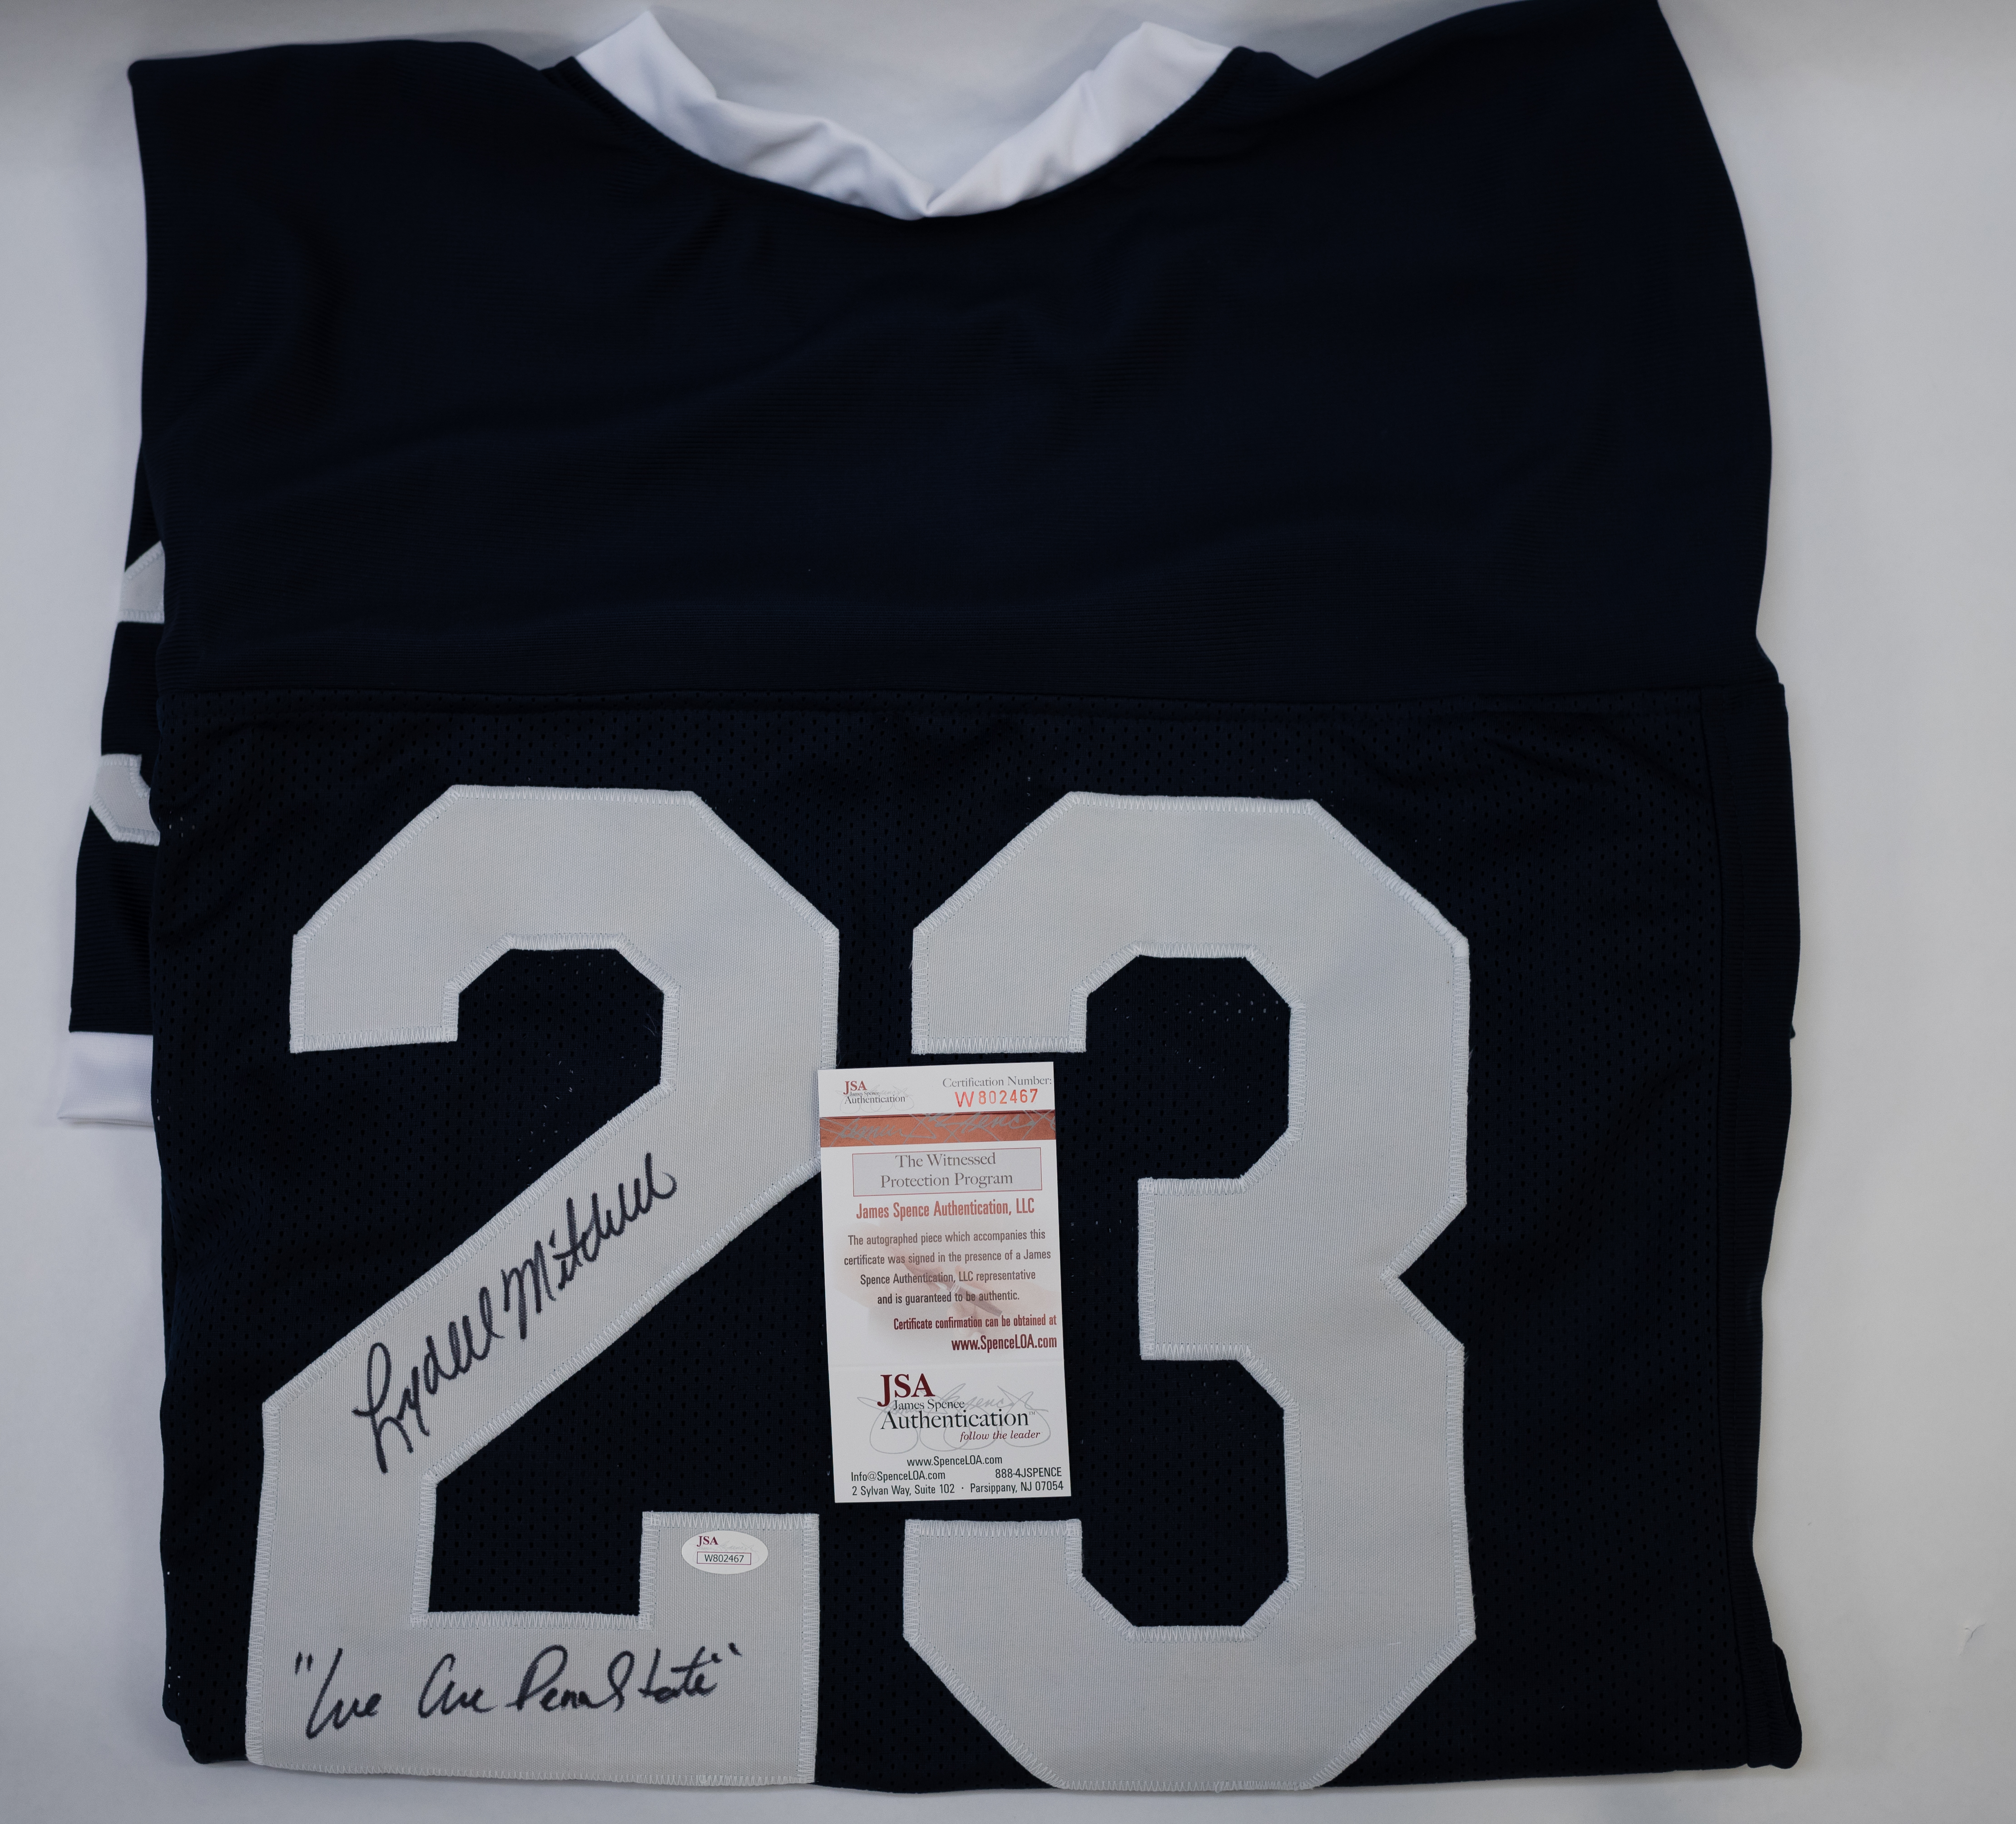 Lot detail lydell mitchell signed inscribed penn state jersey lydell mitchell signed inscribed penn state jersey jsa 1betcityfo Choice Image